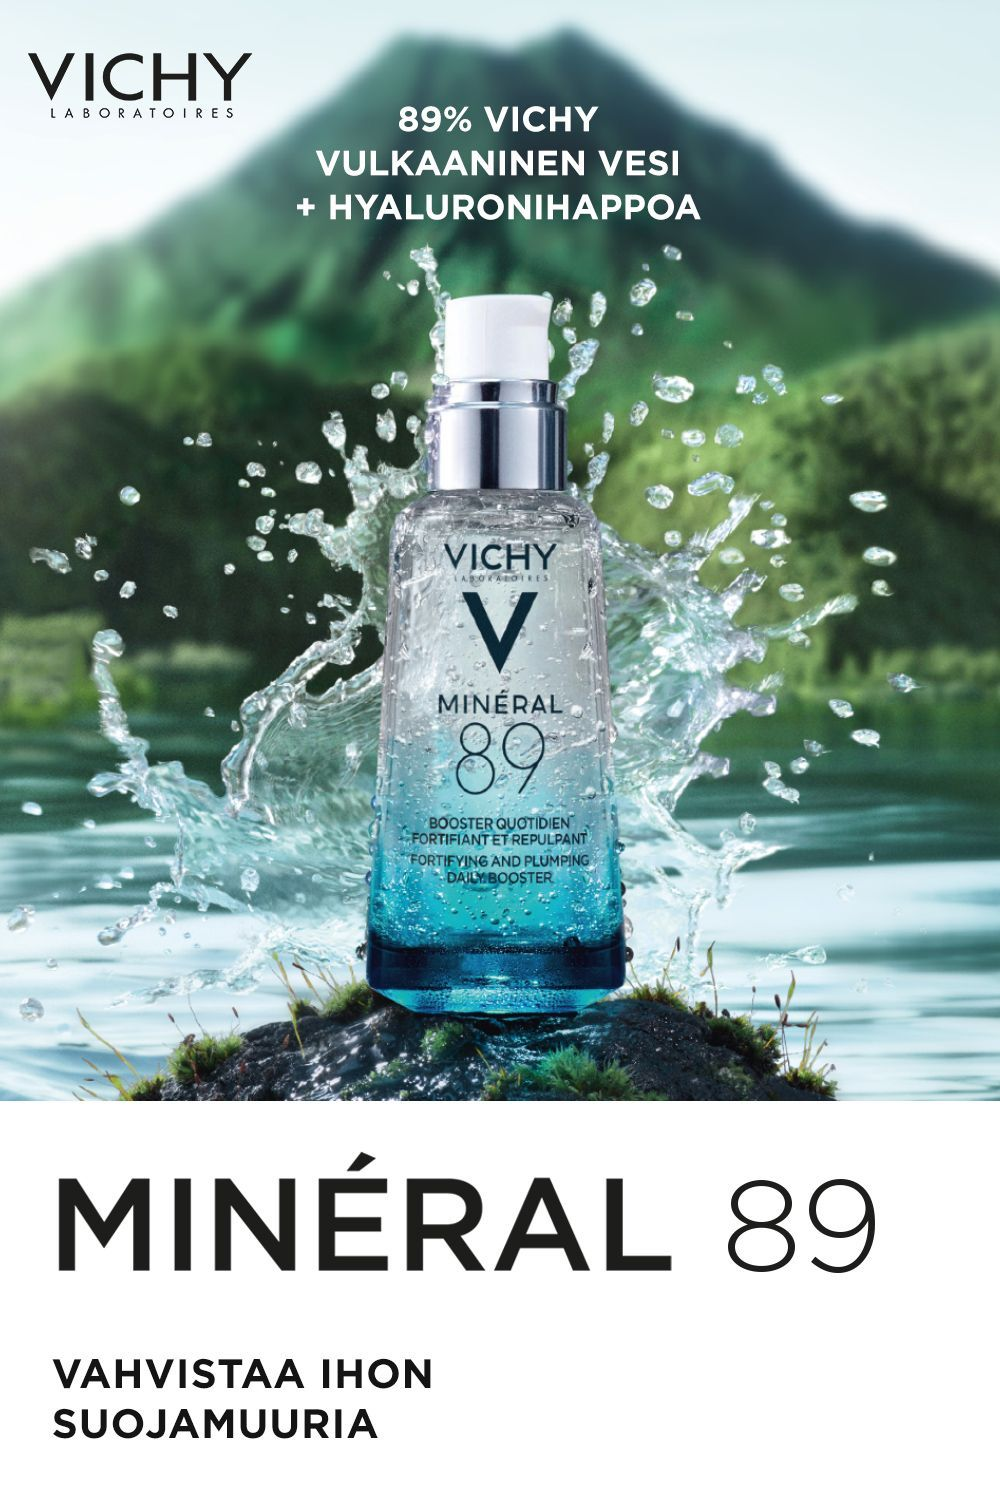 Minéral 89 seal in 2020 Vichy, Minerals, Body skin care